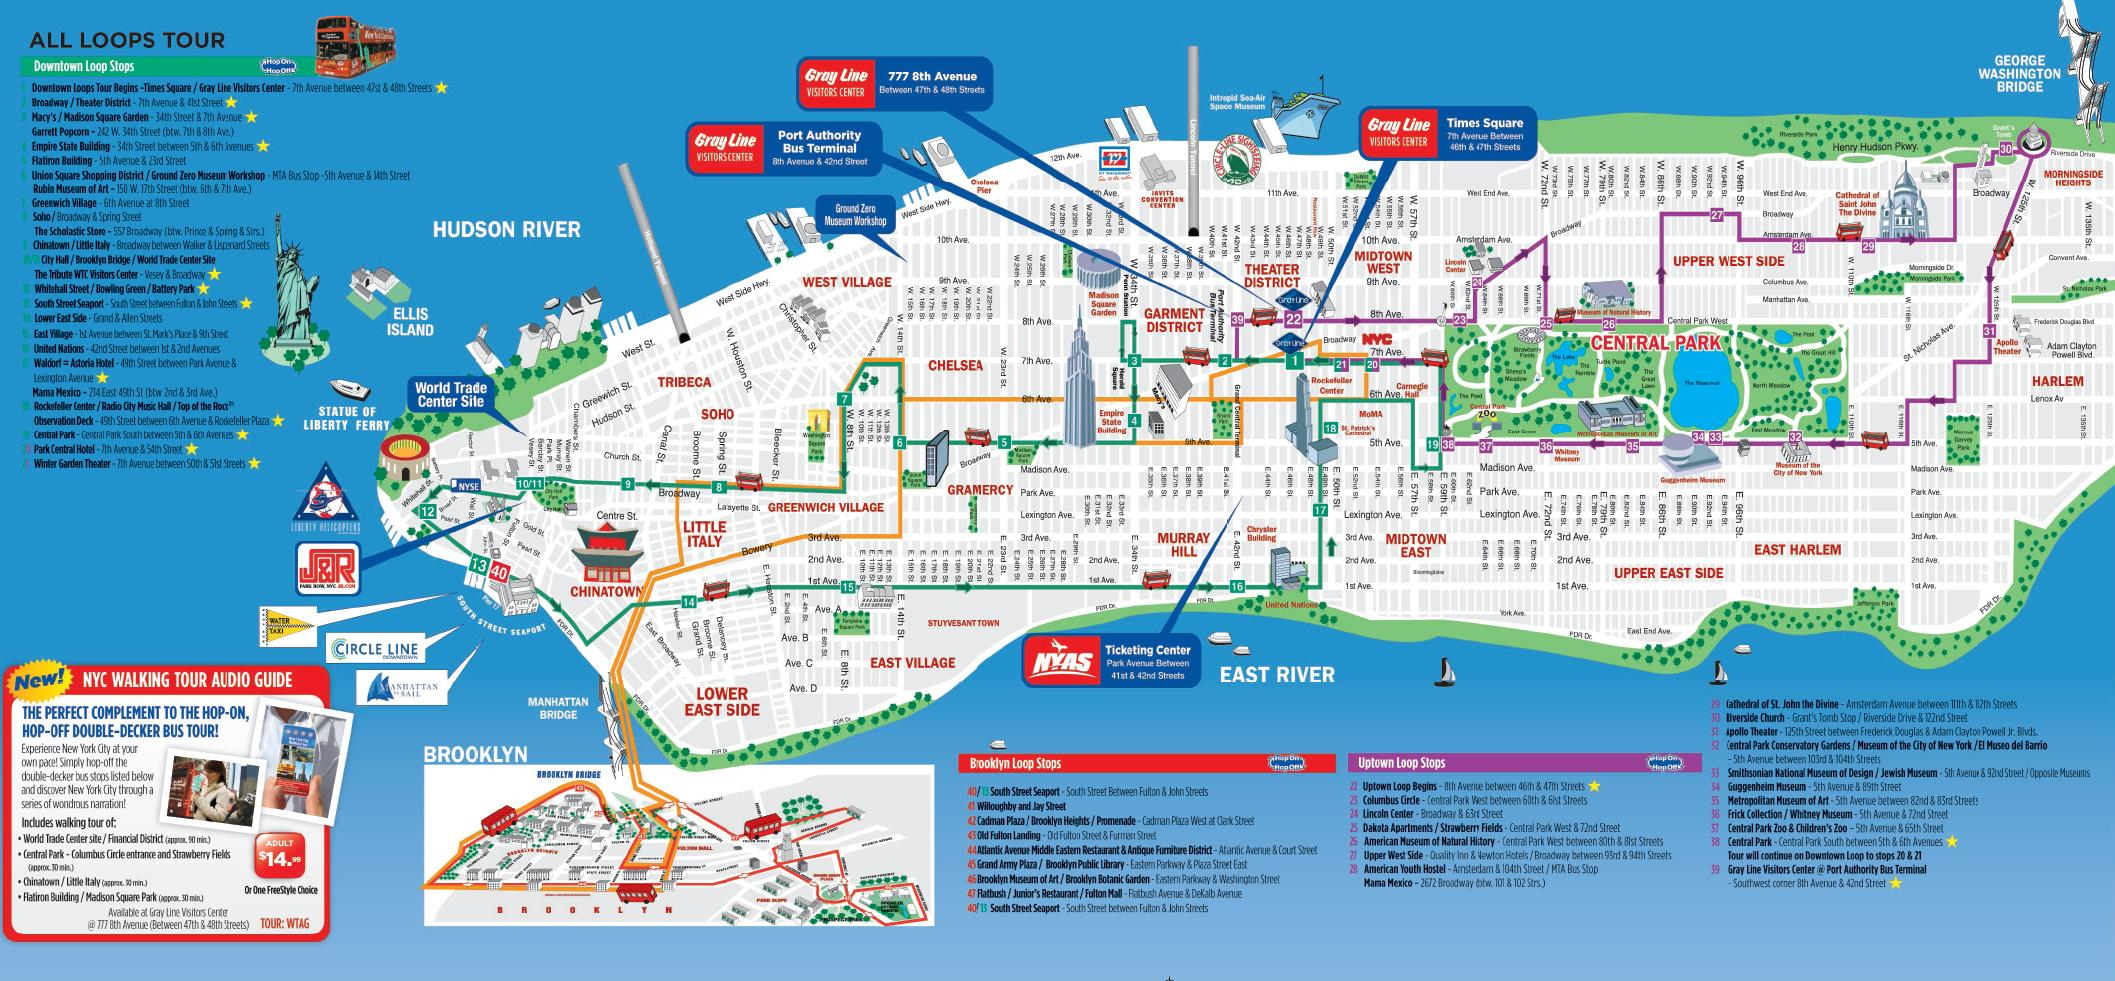 Map Of New York Attractions Printable Pics S New York Maps New York - Printable New York City Map With Attractions